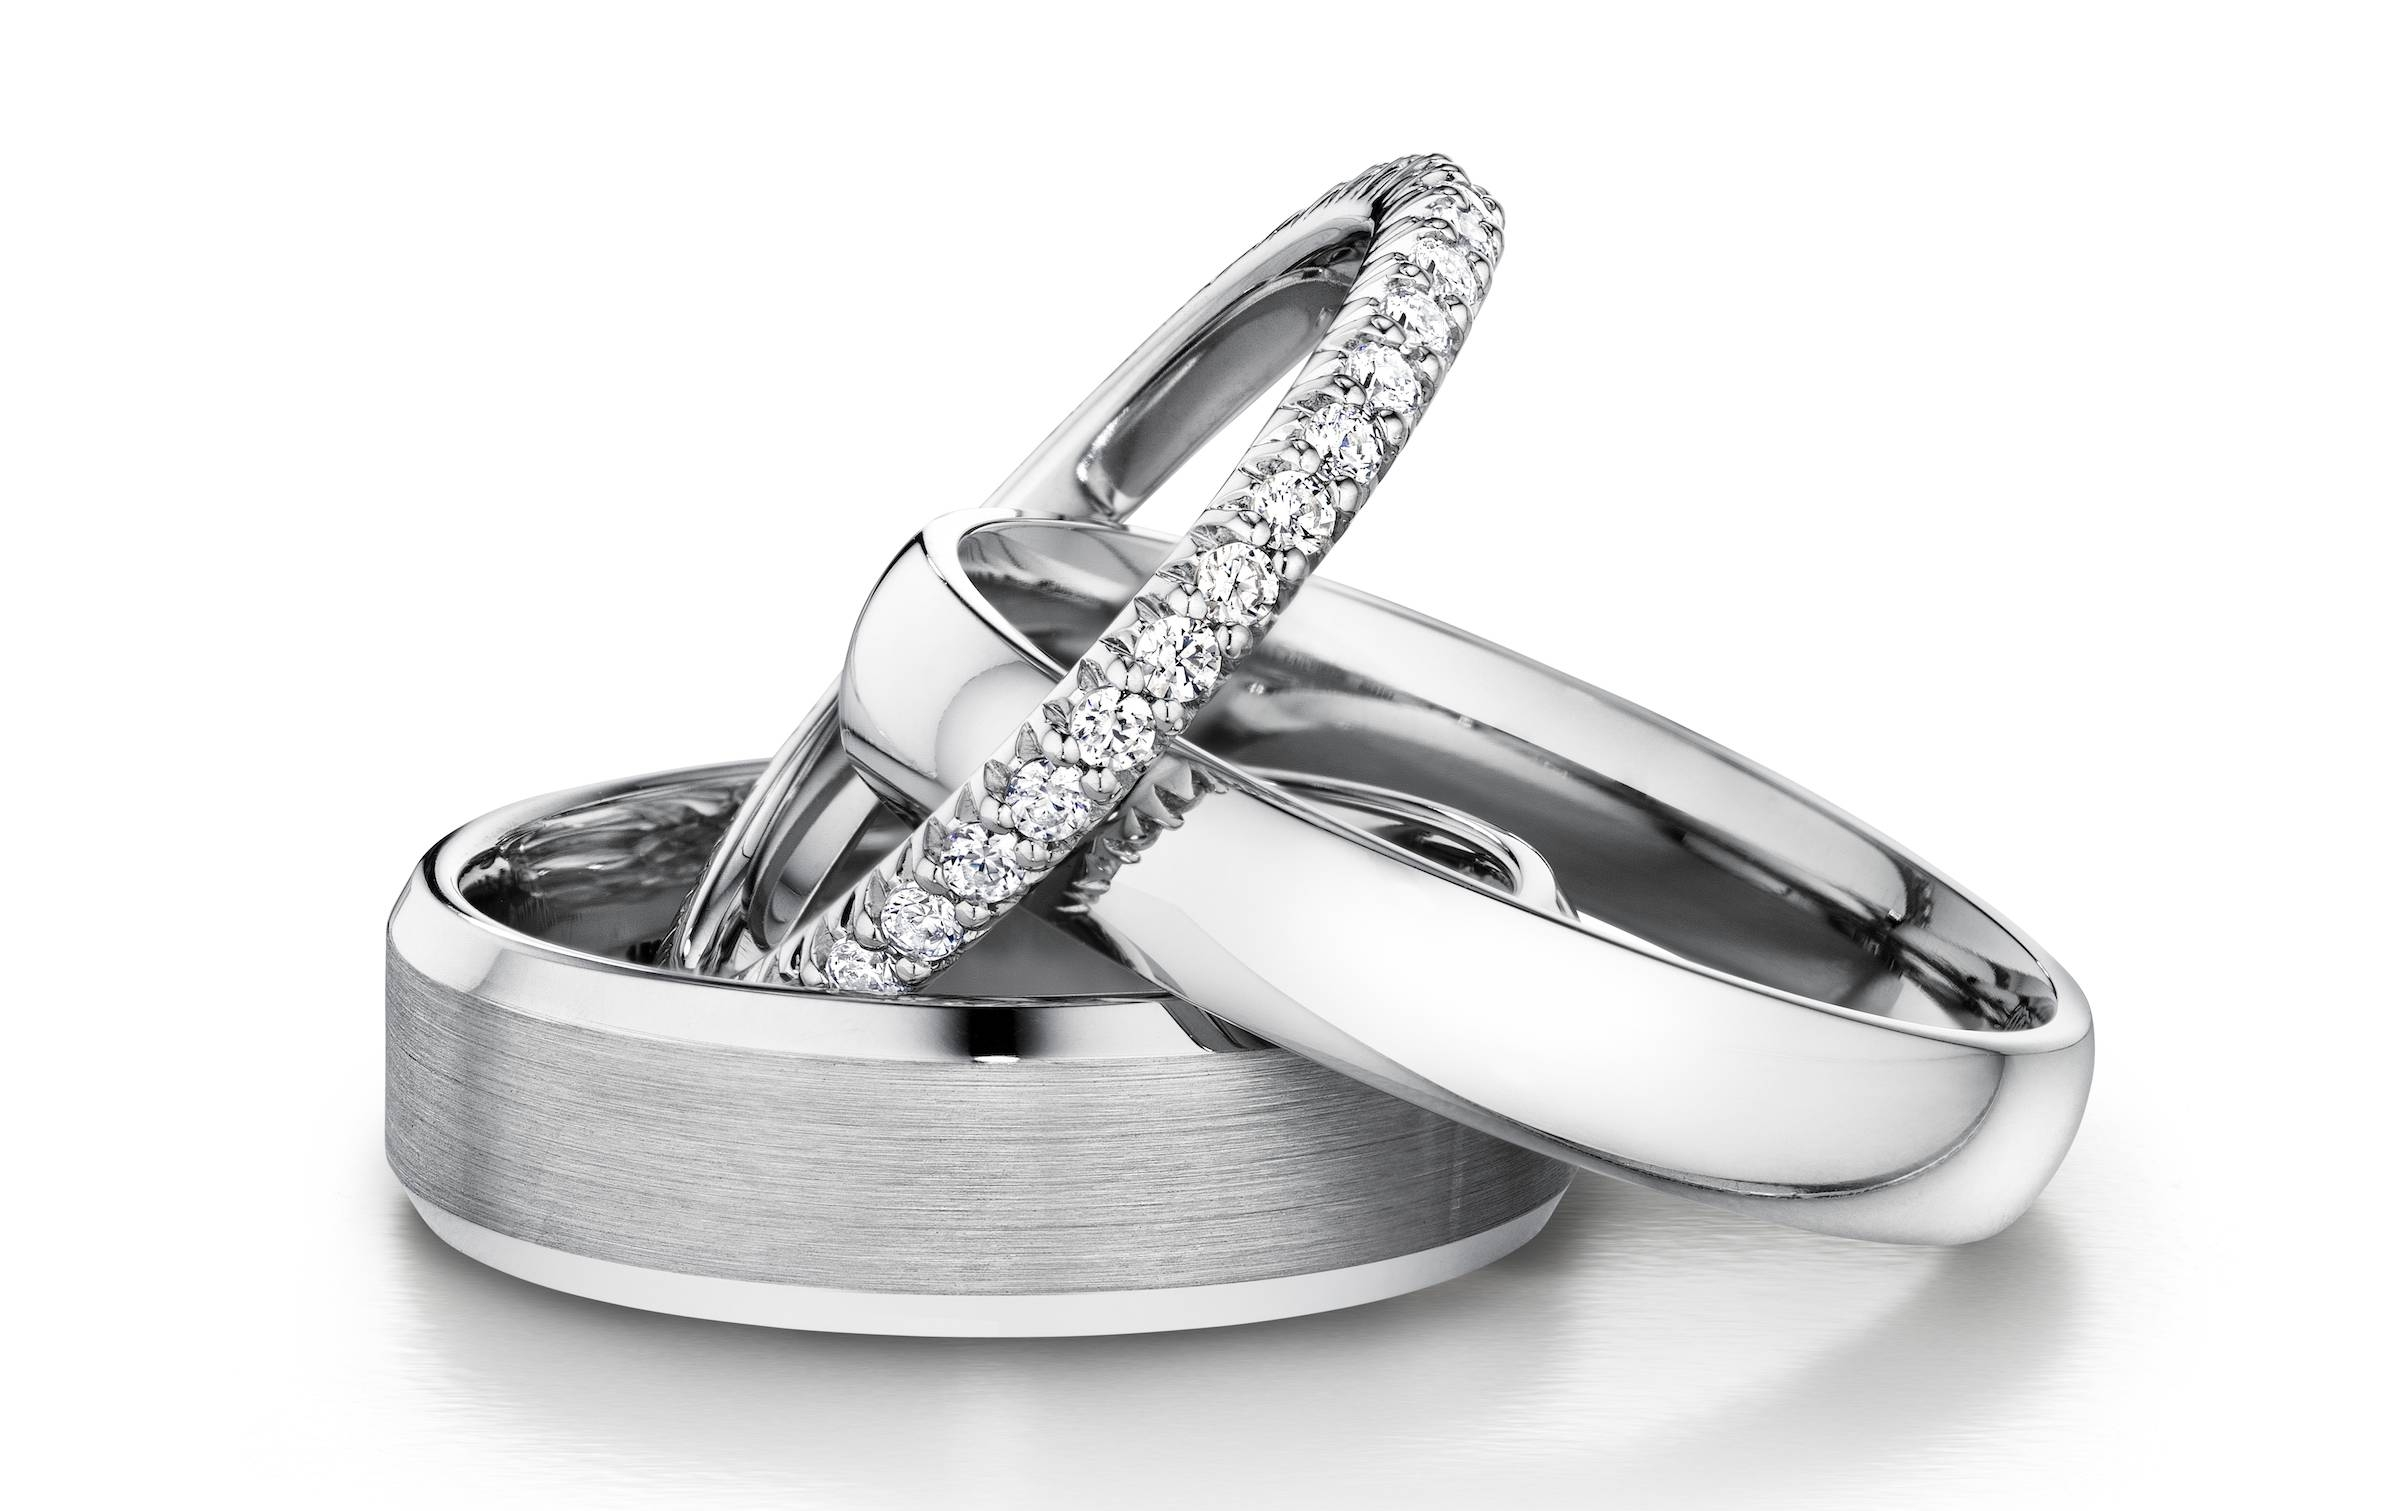 The Top 10 Most Popular Men's Wedding Bands Of 2015 | Ritani With Regard To Durable Wedding Bands For Men (View 14 of 15)